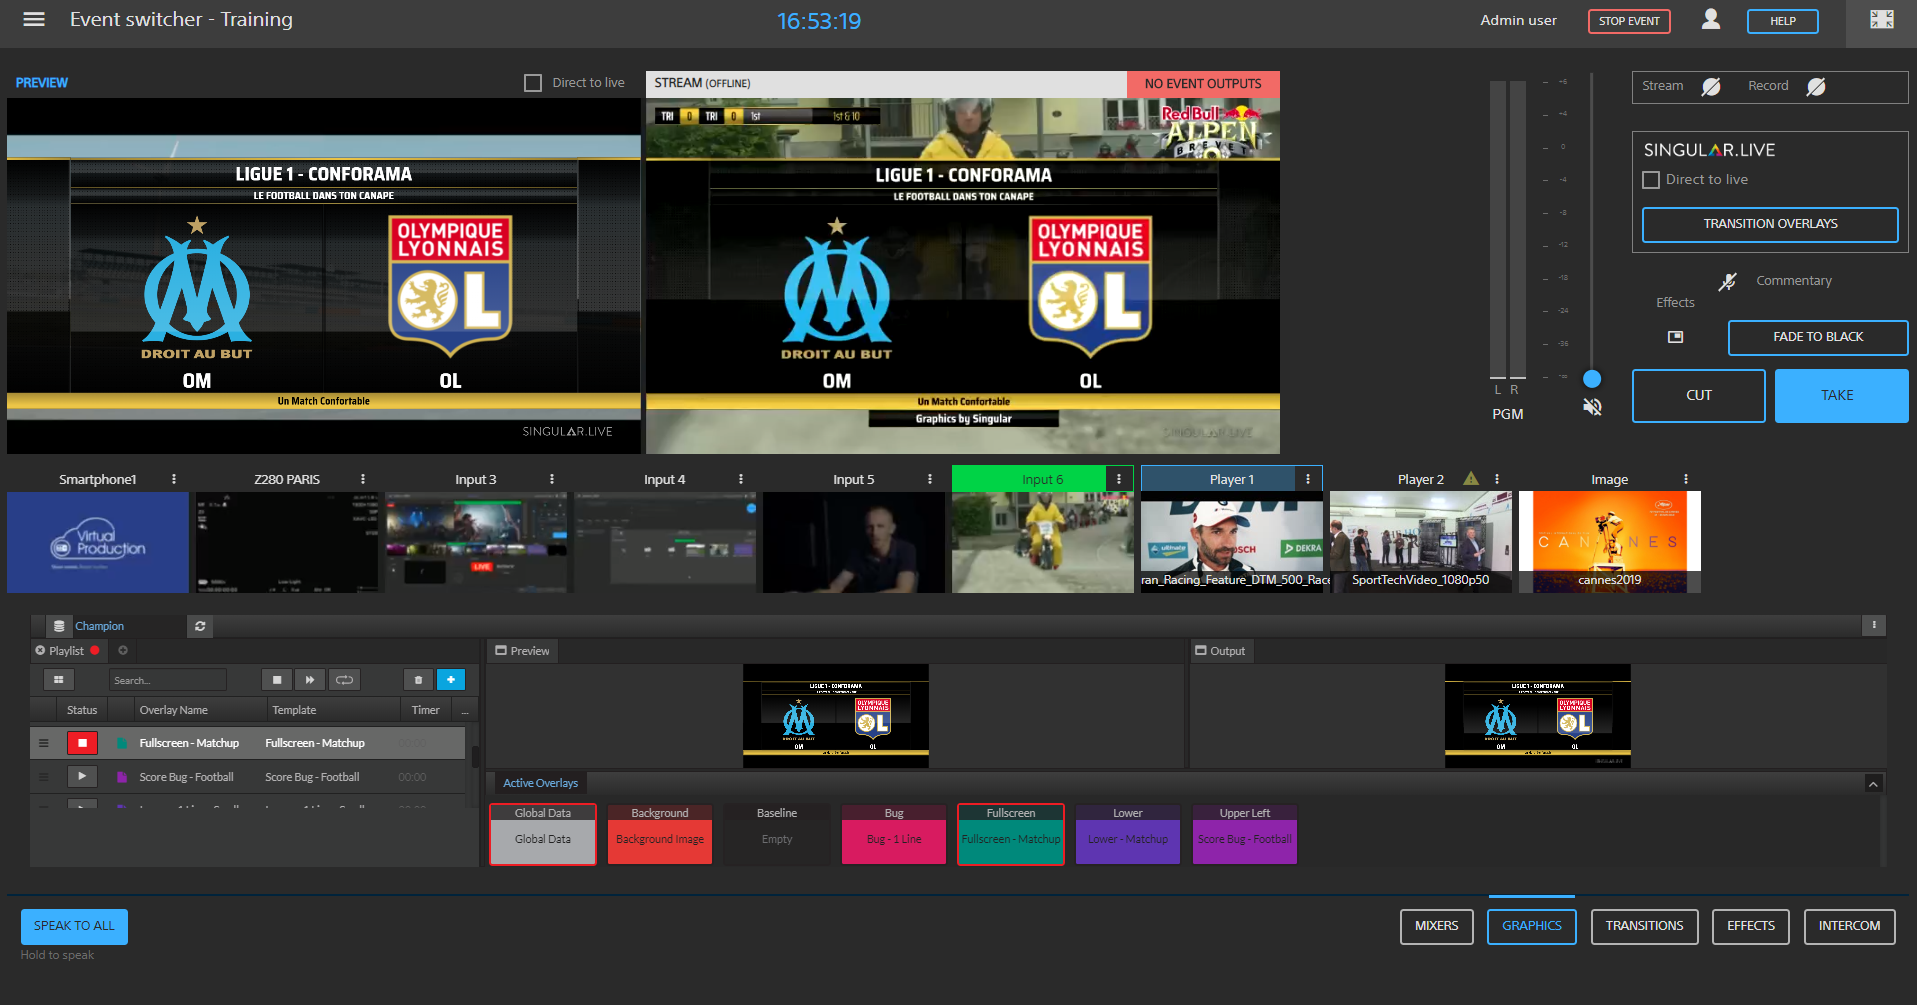 Sony Professional Europe adds Singular.Live graphics to Virtual Production